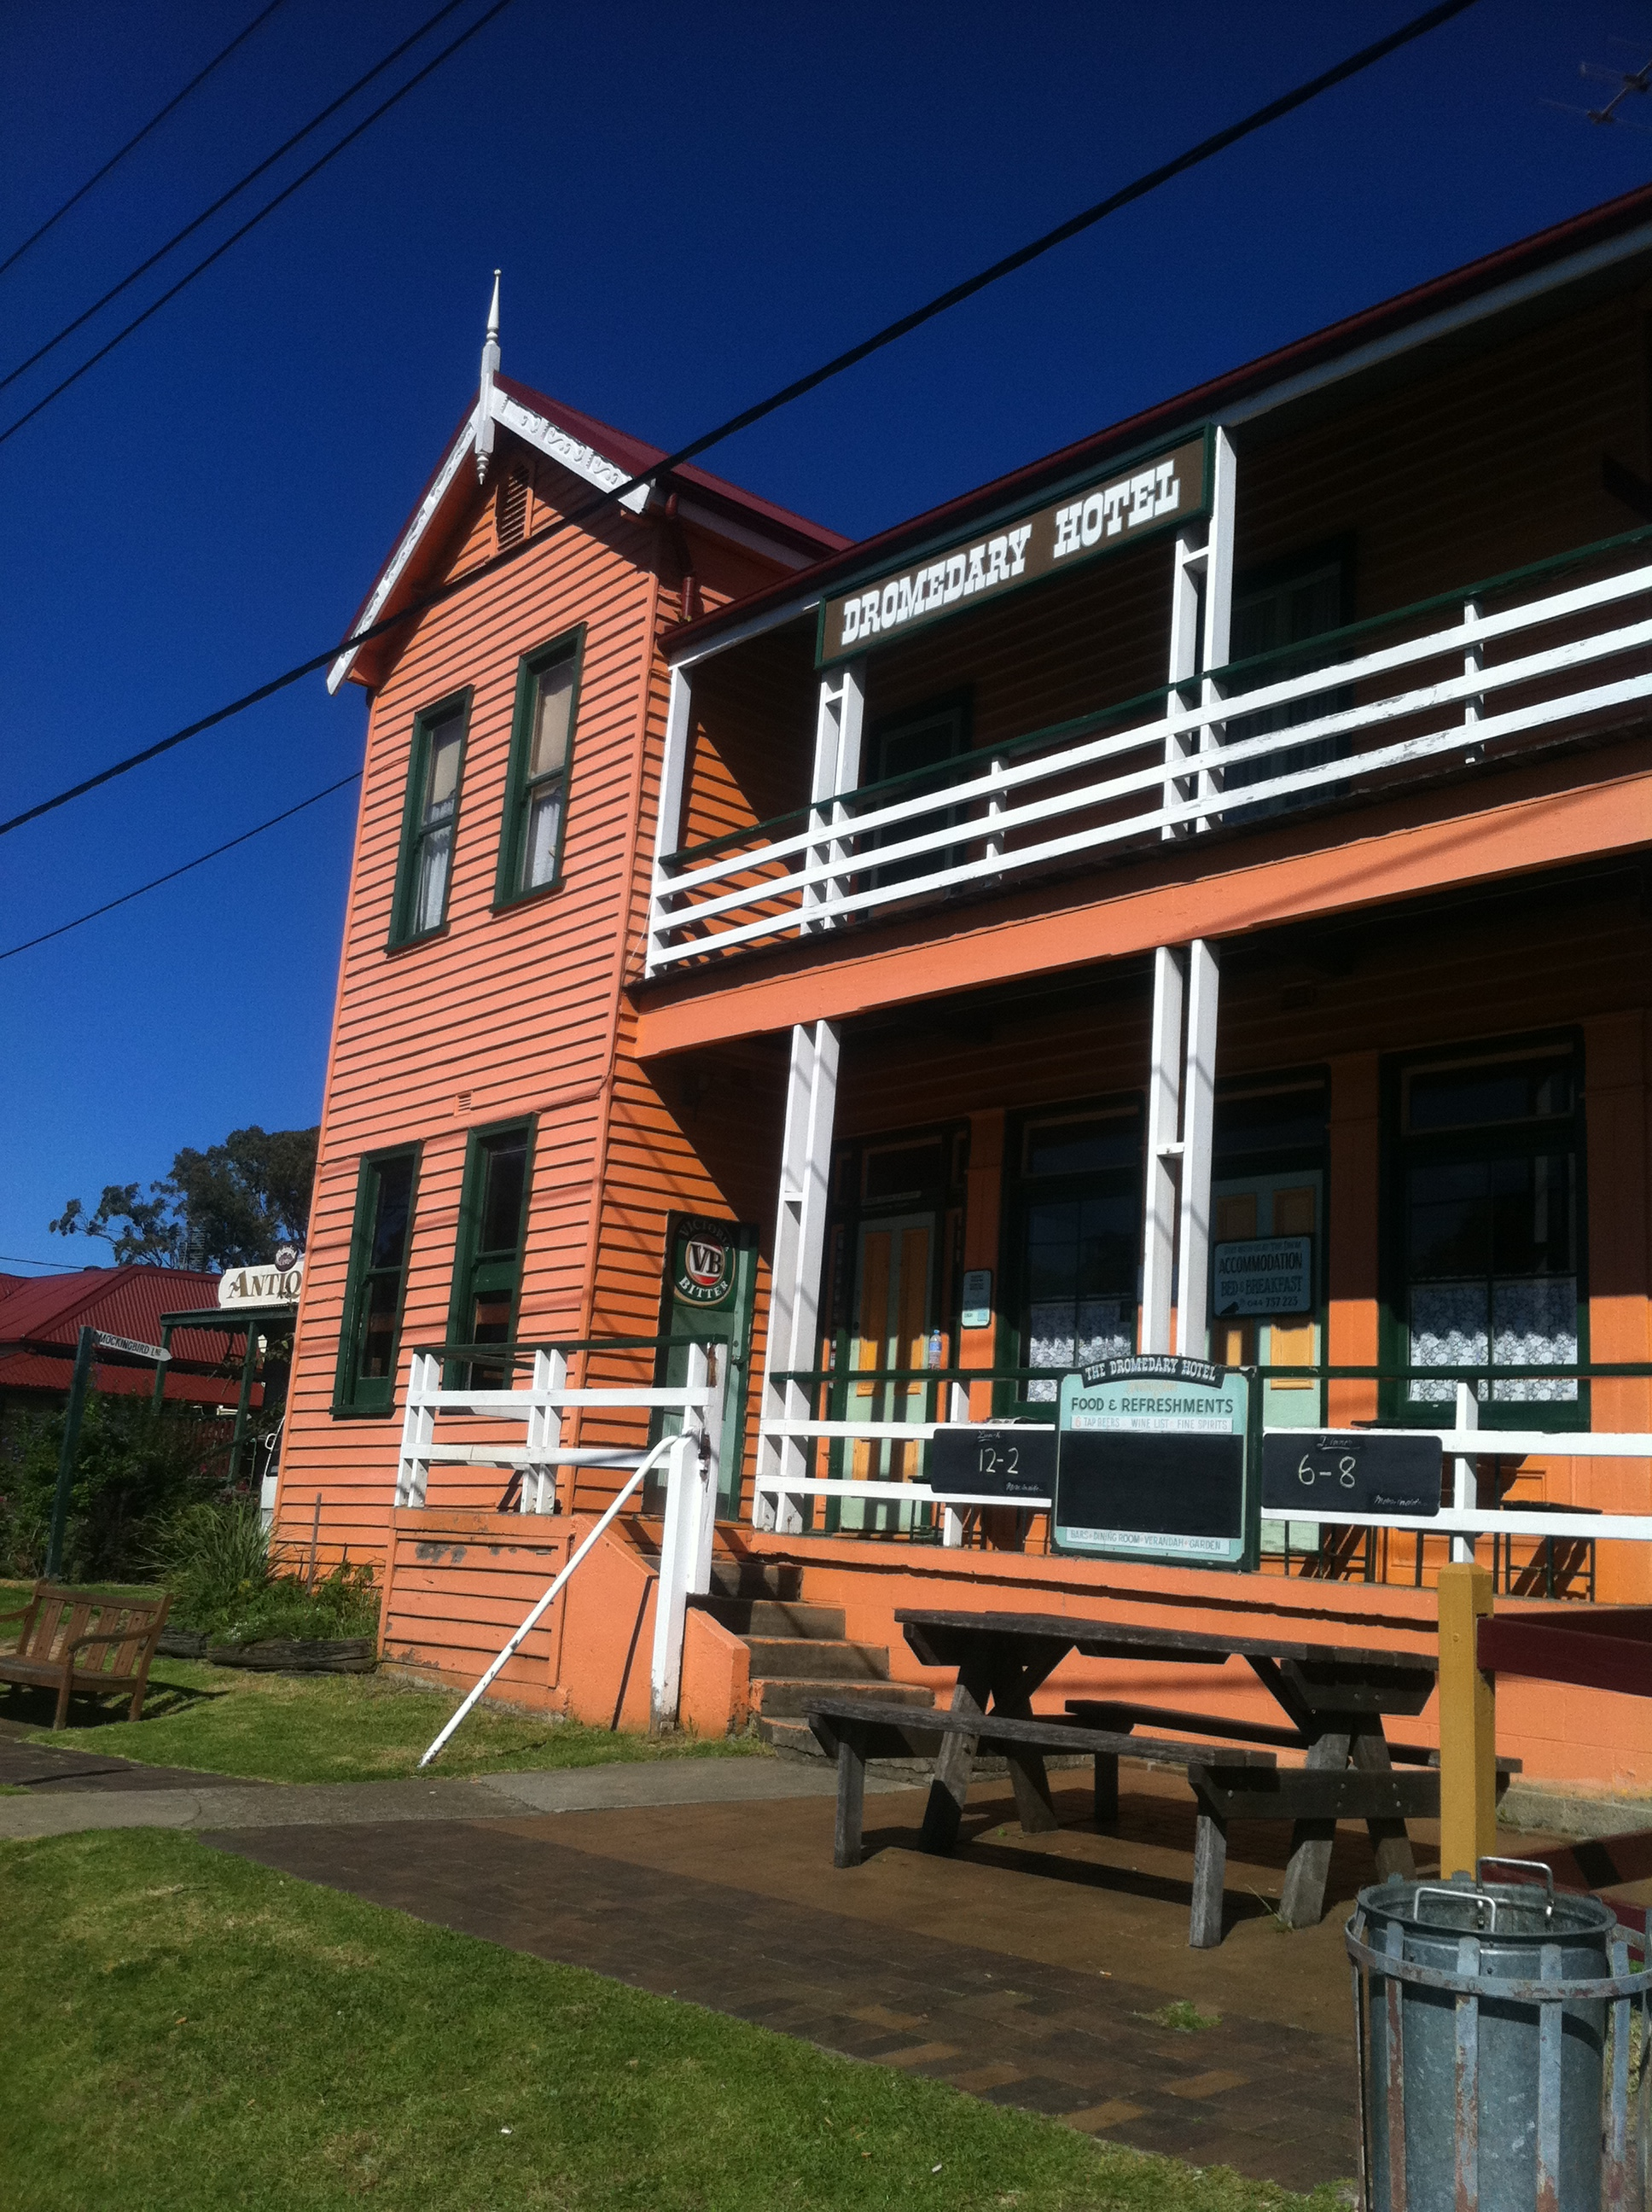 Dromedary Hotel - Accommodation Broken Hill